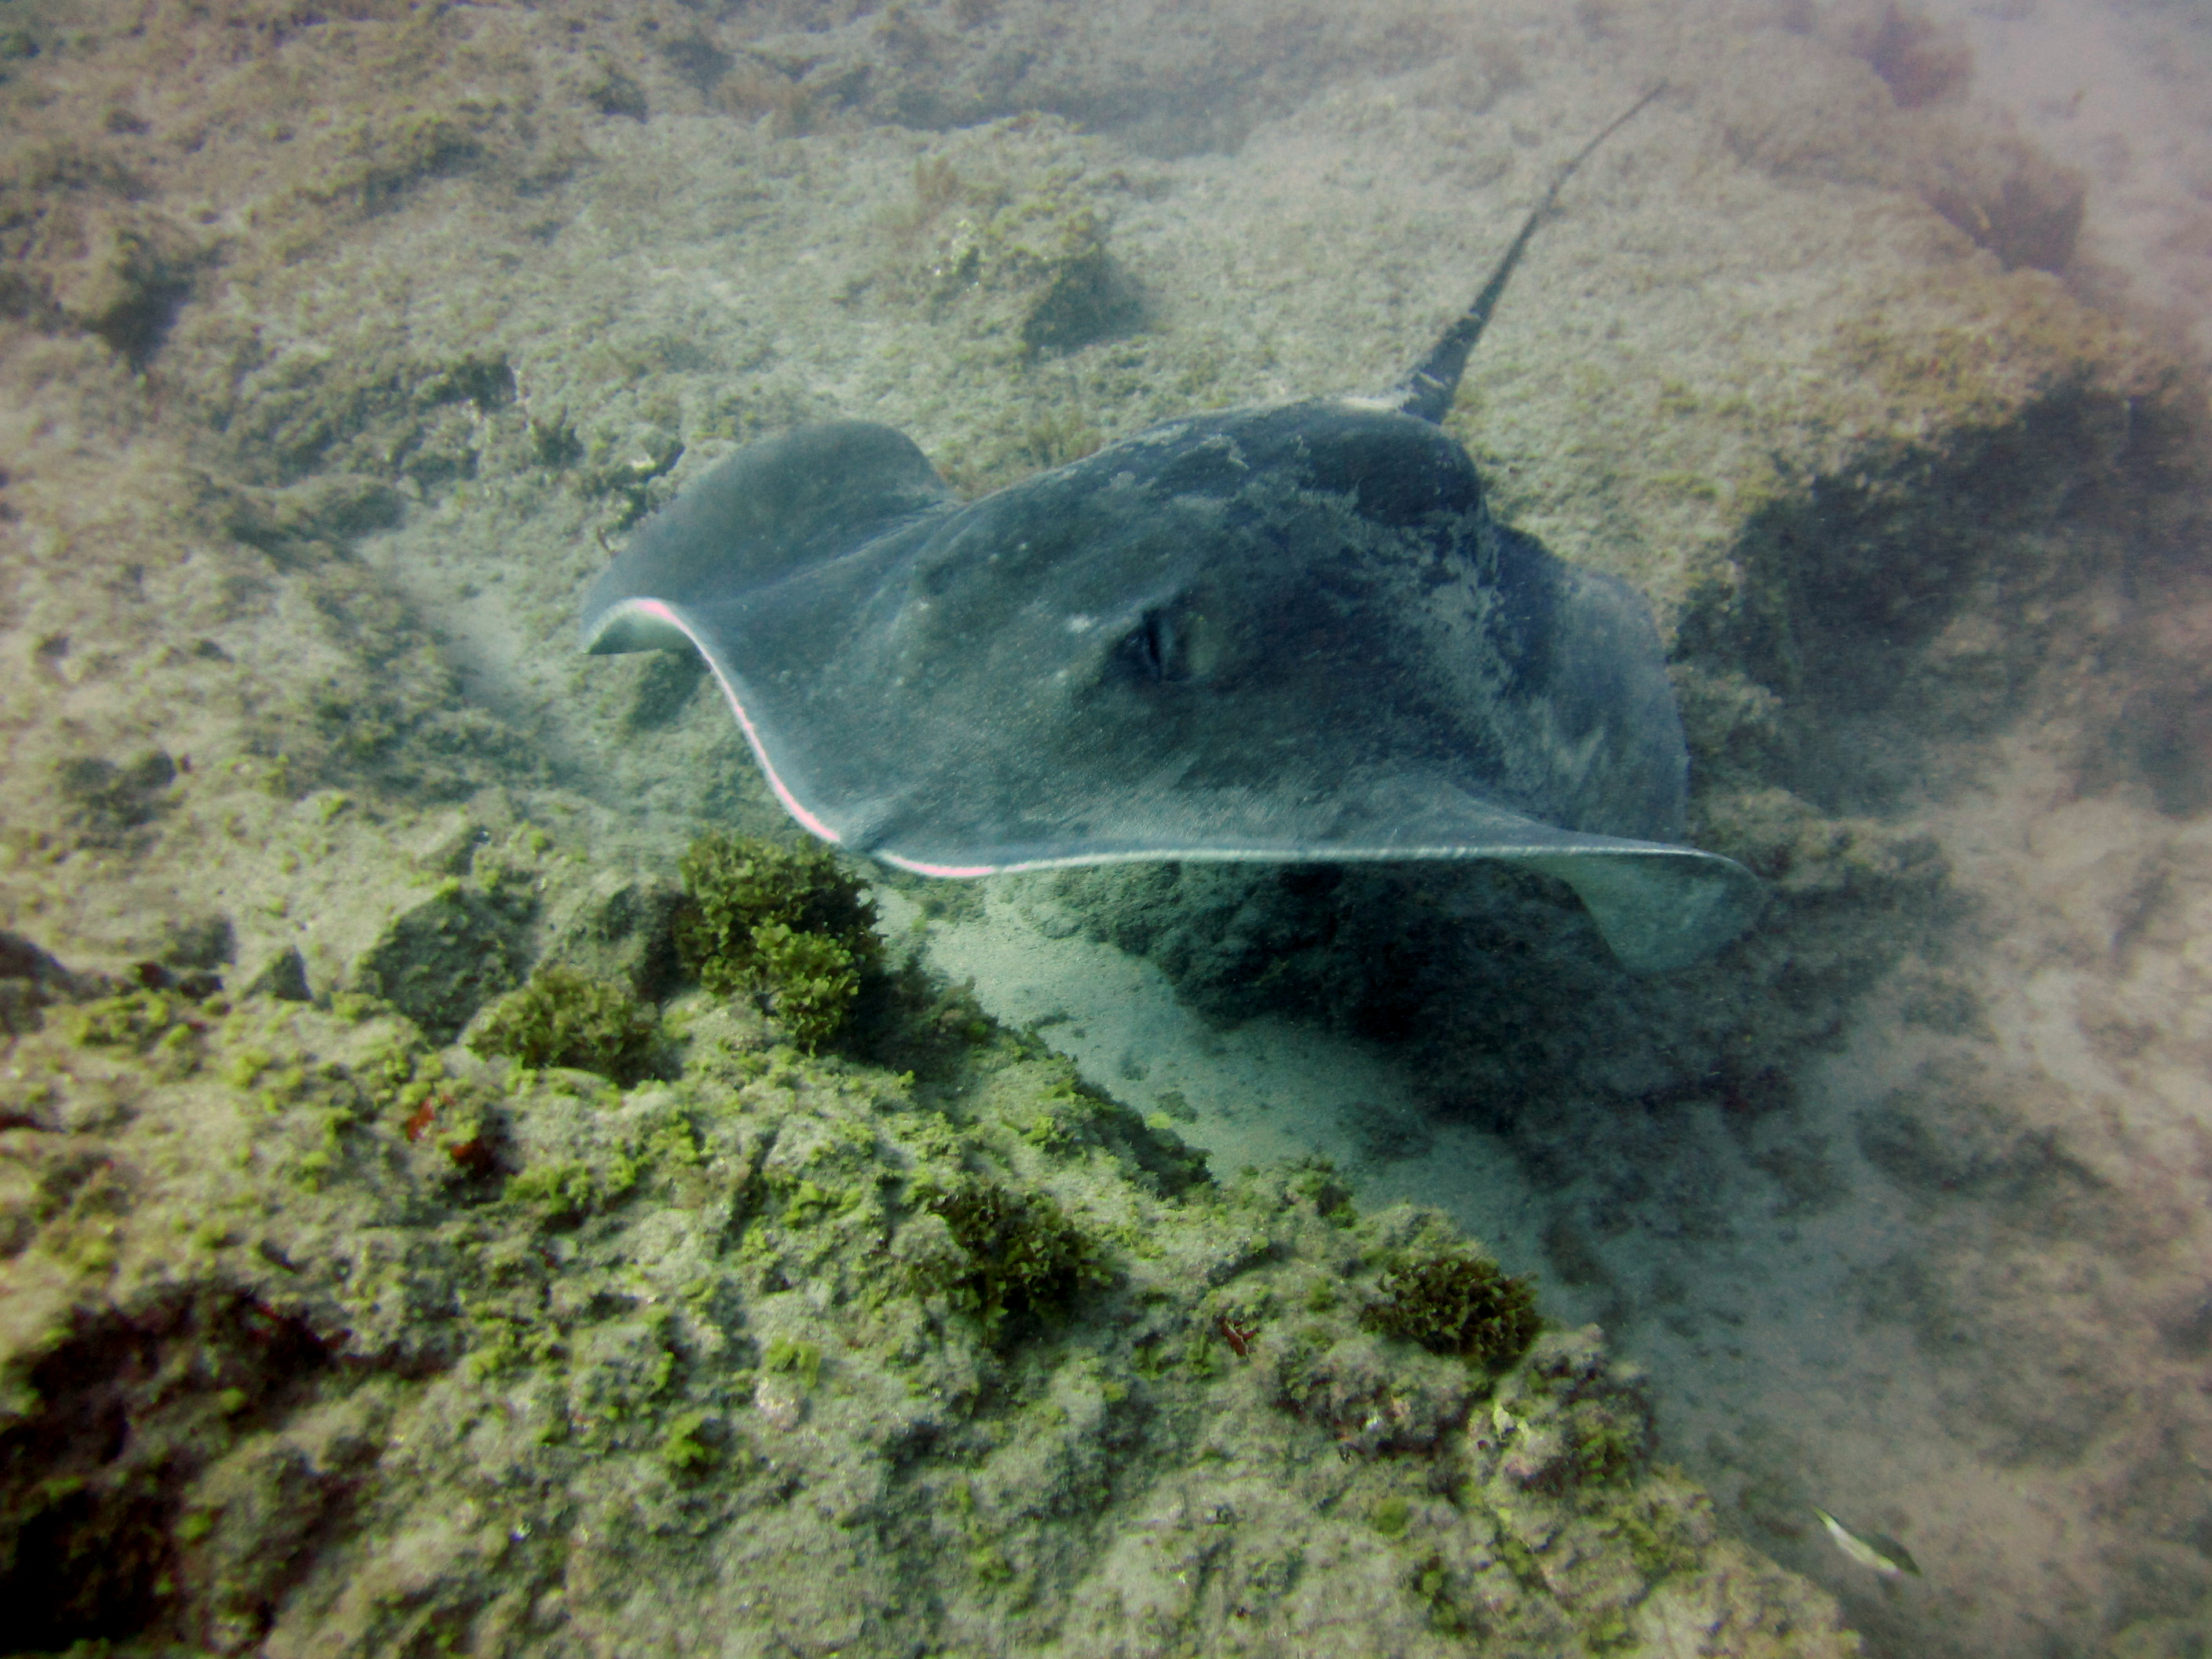 Diving-Tenerife-Aquatic-Life-Sharks-Sting-Rays-Fish (45)